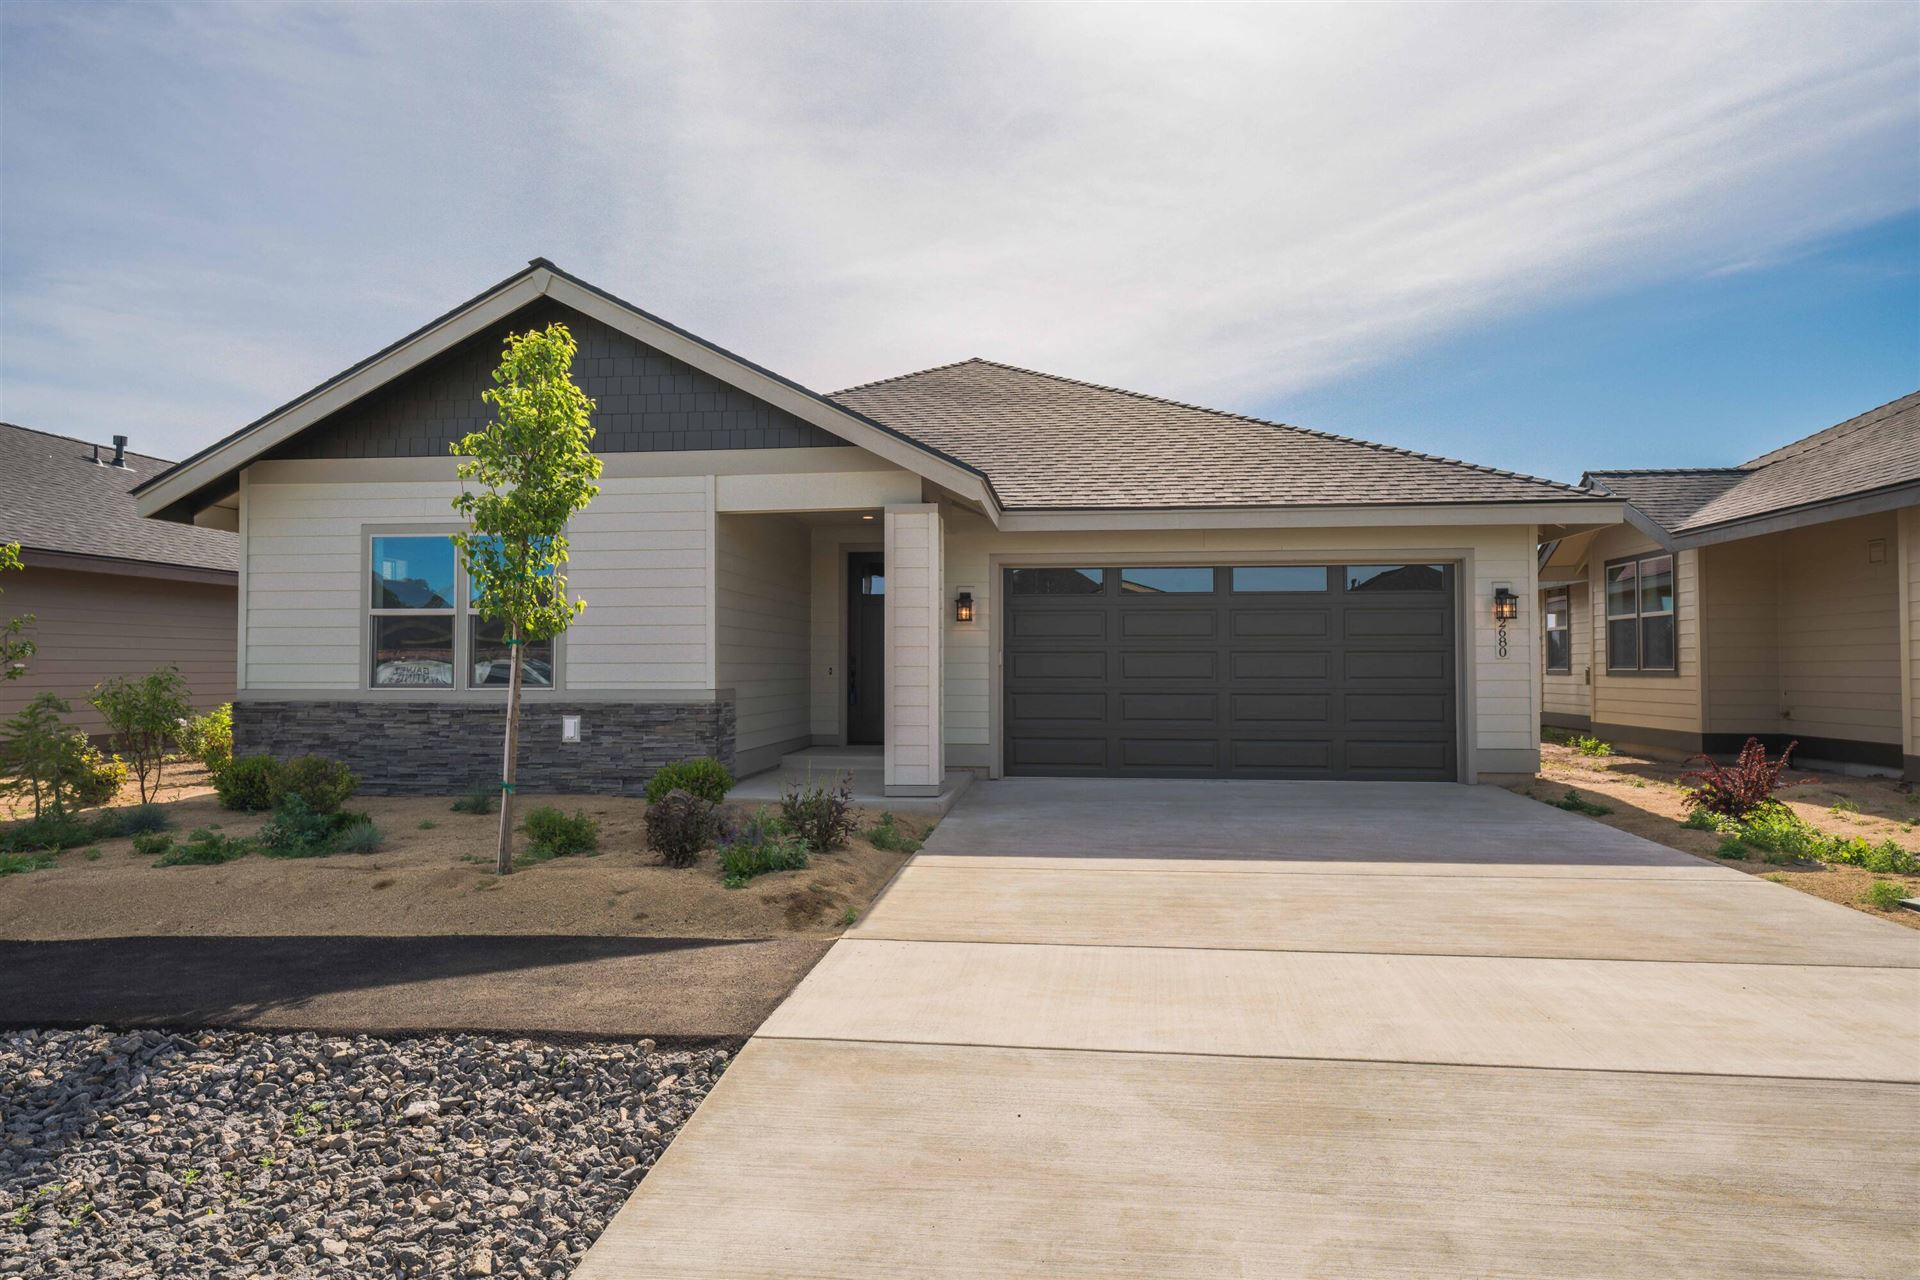 Photo of 35 NW 25th Street, Redmond, OR 97756 (MLS # 220101738)